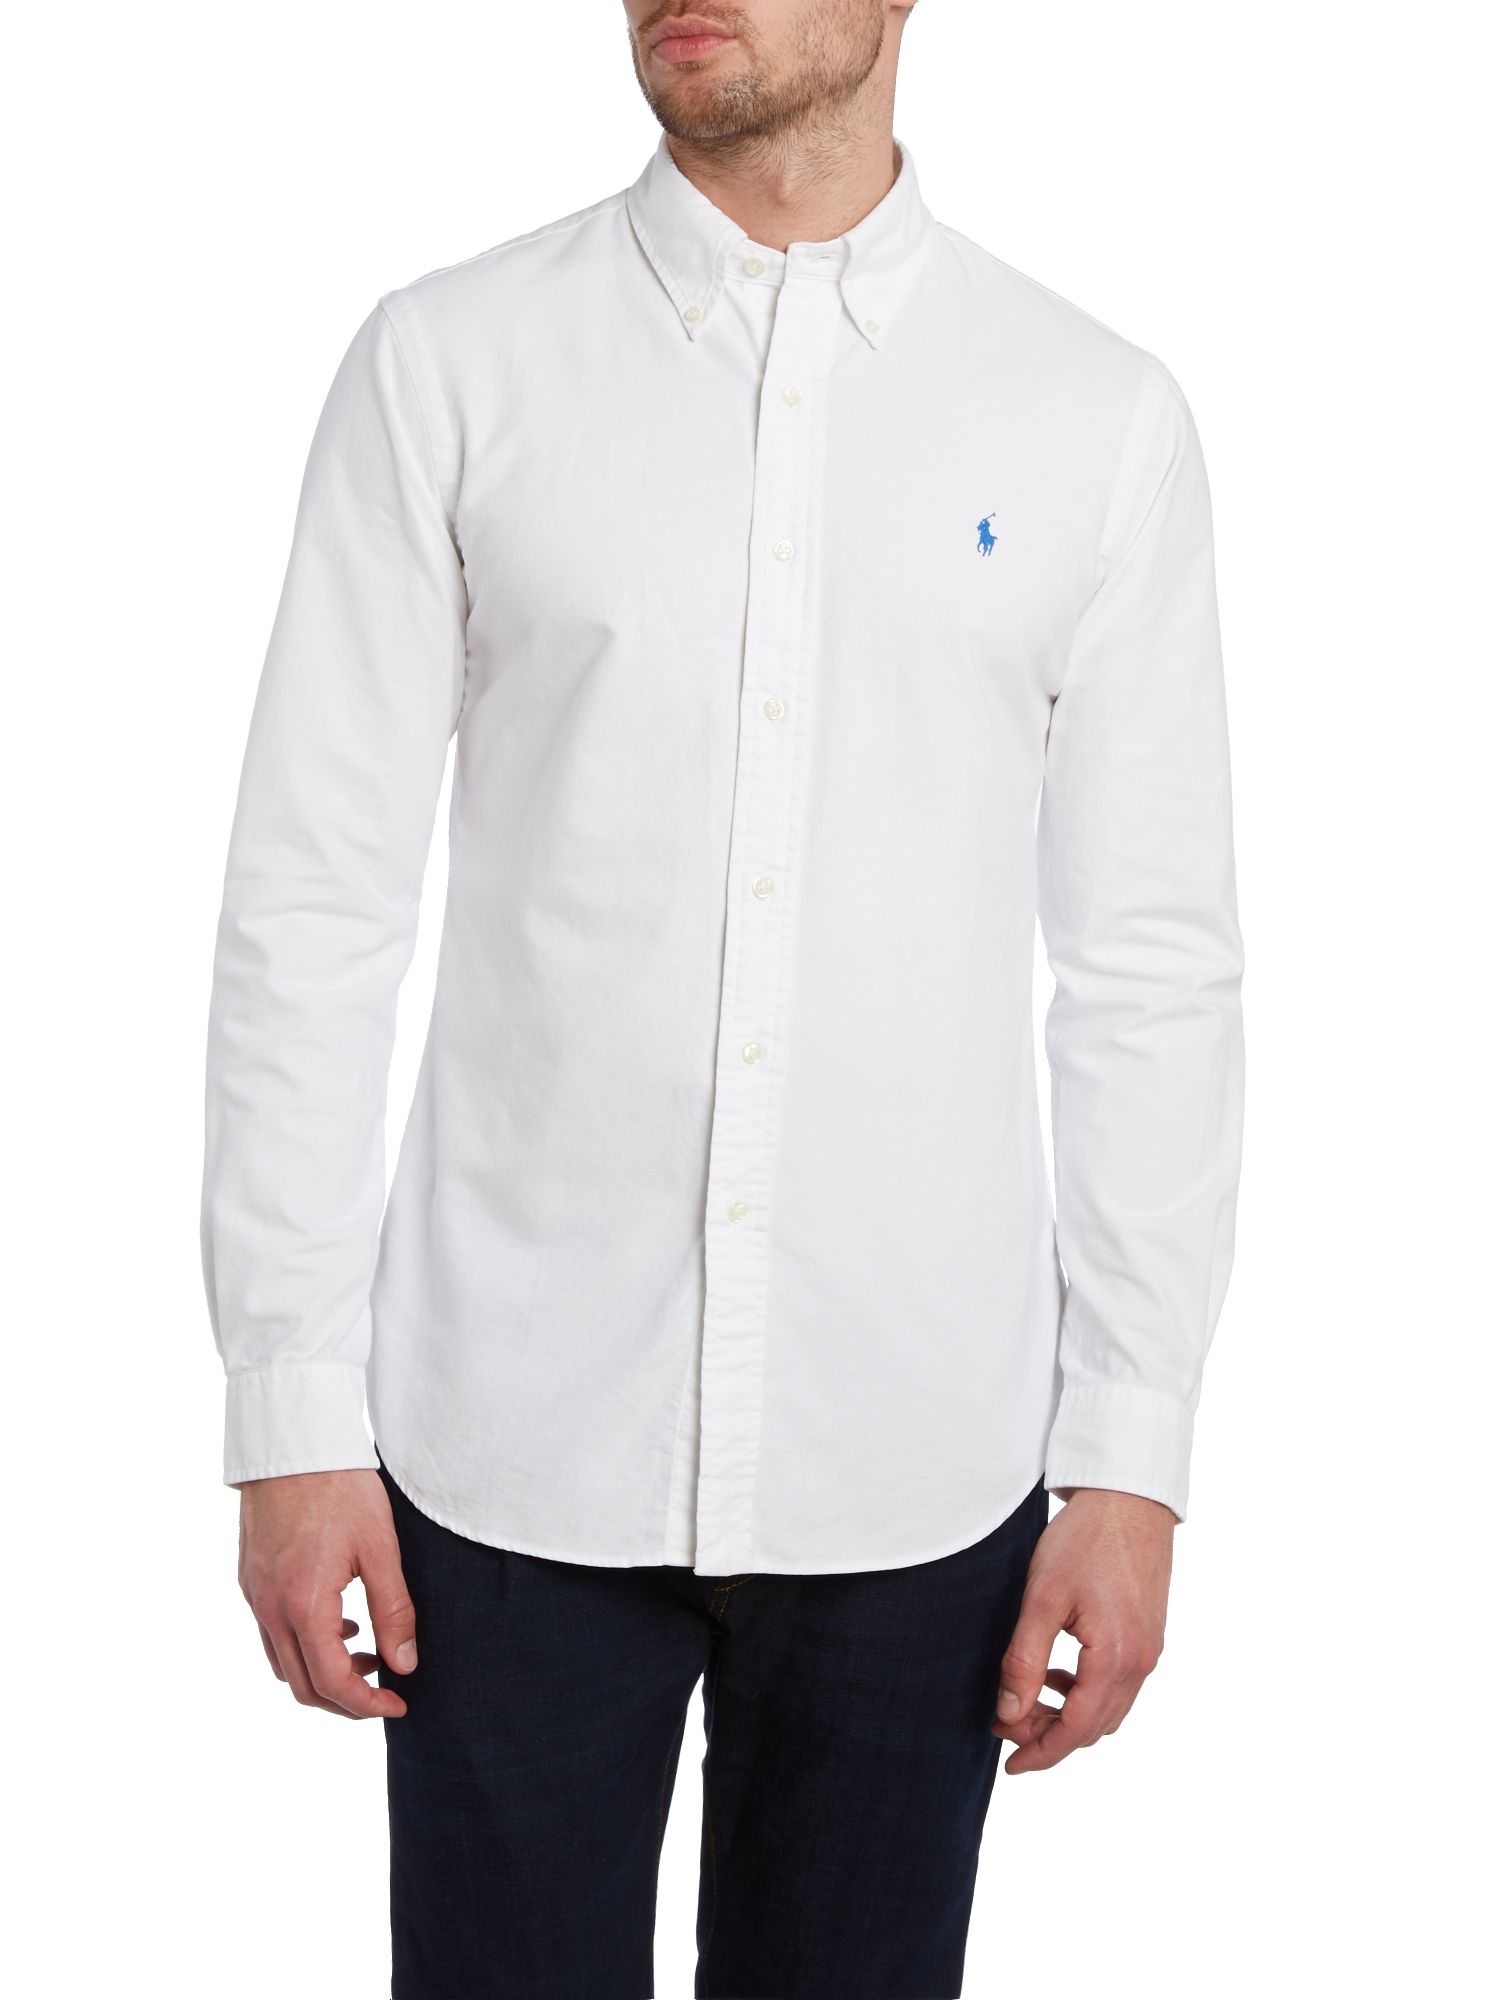 Ralph Lauren Oxford Slim Fit Shirt